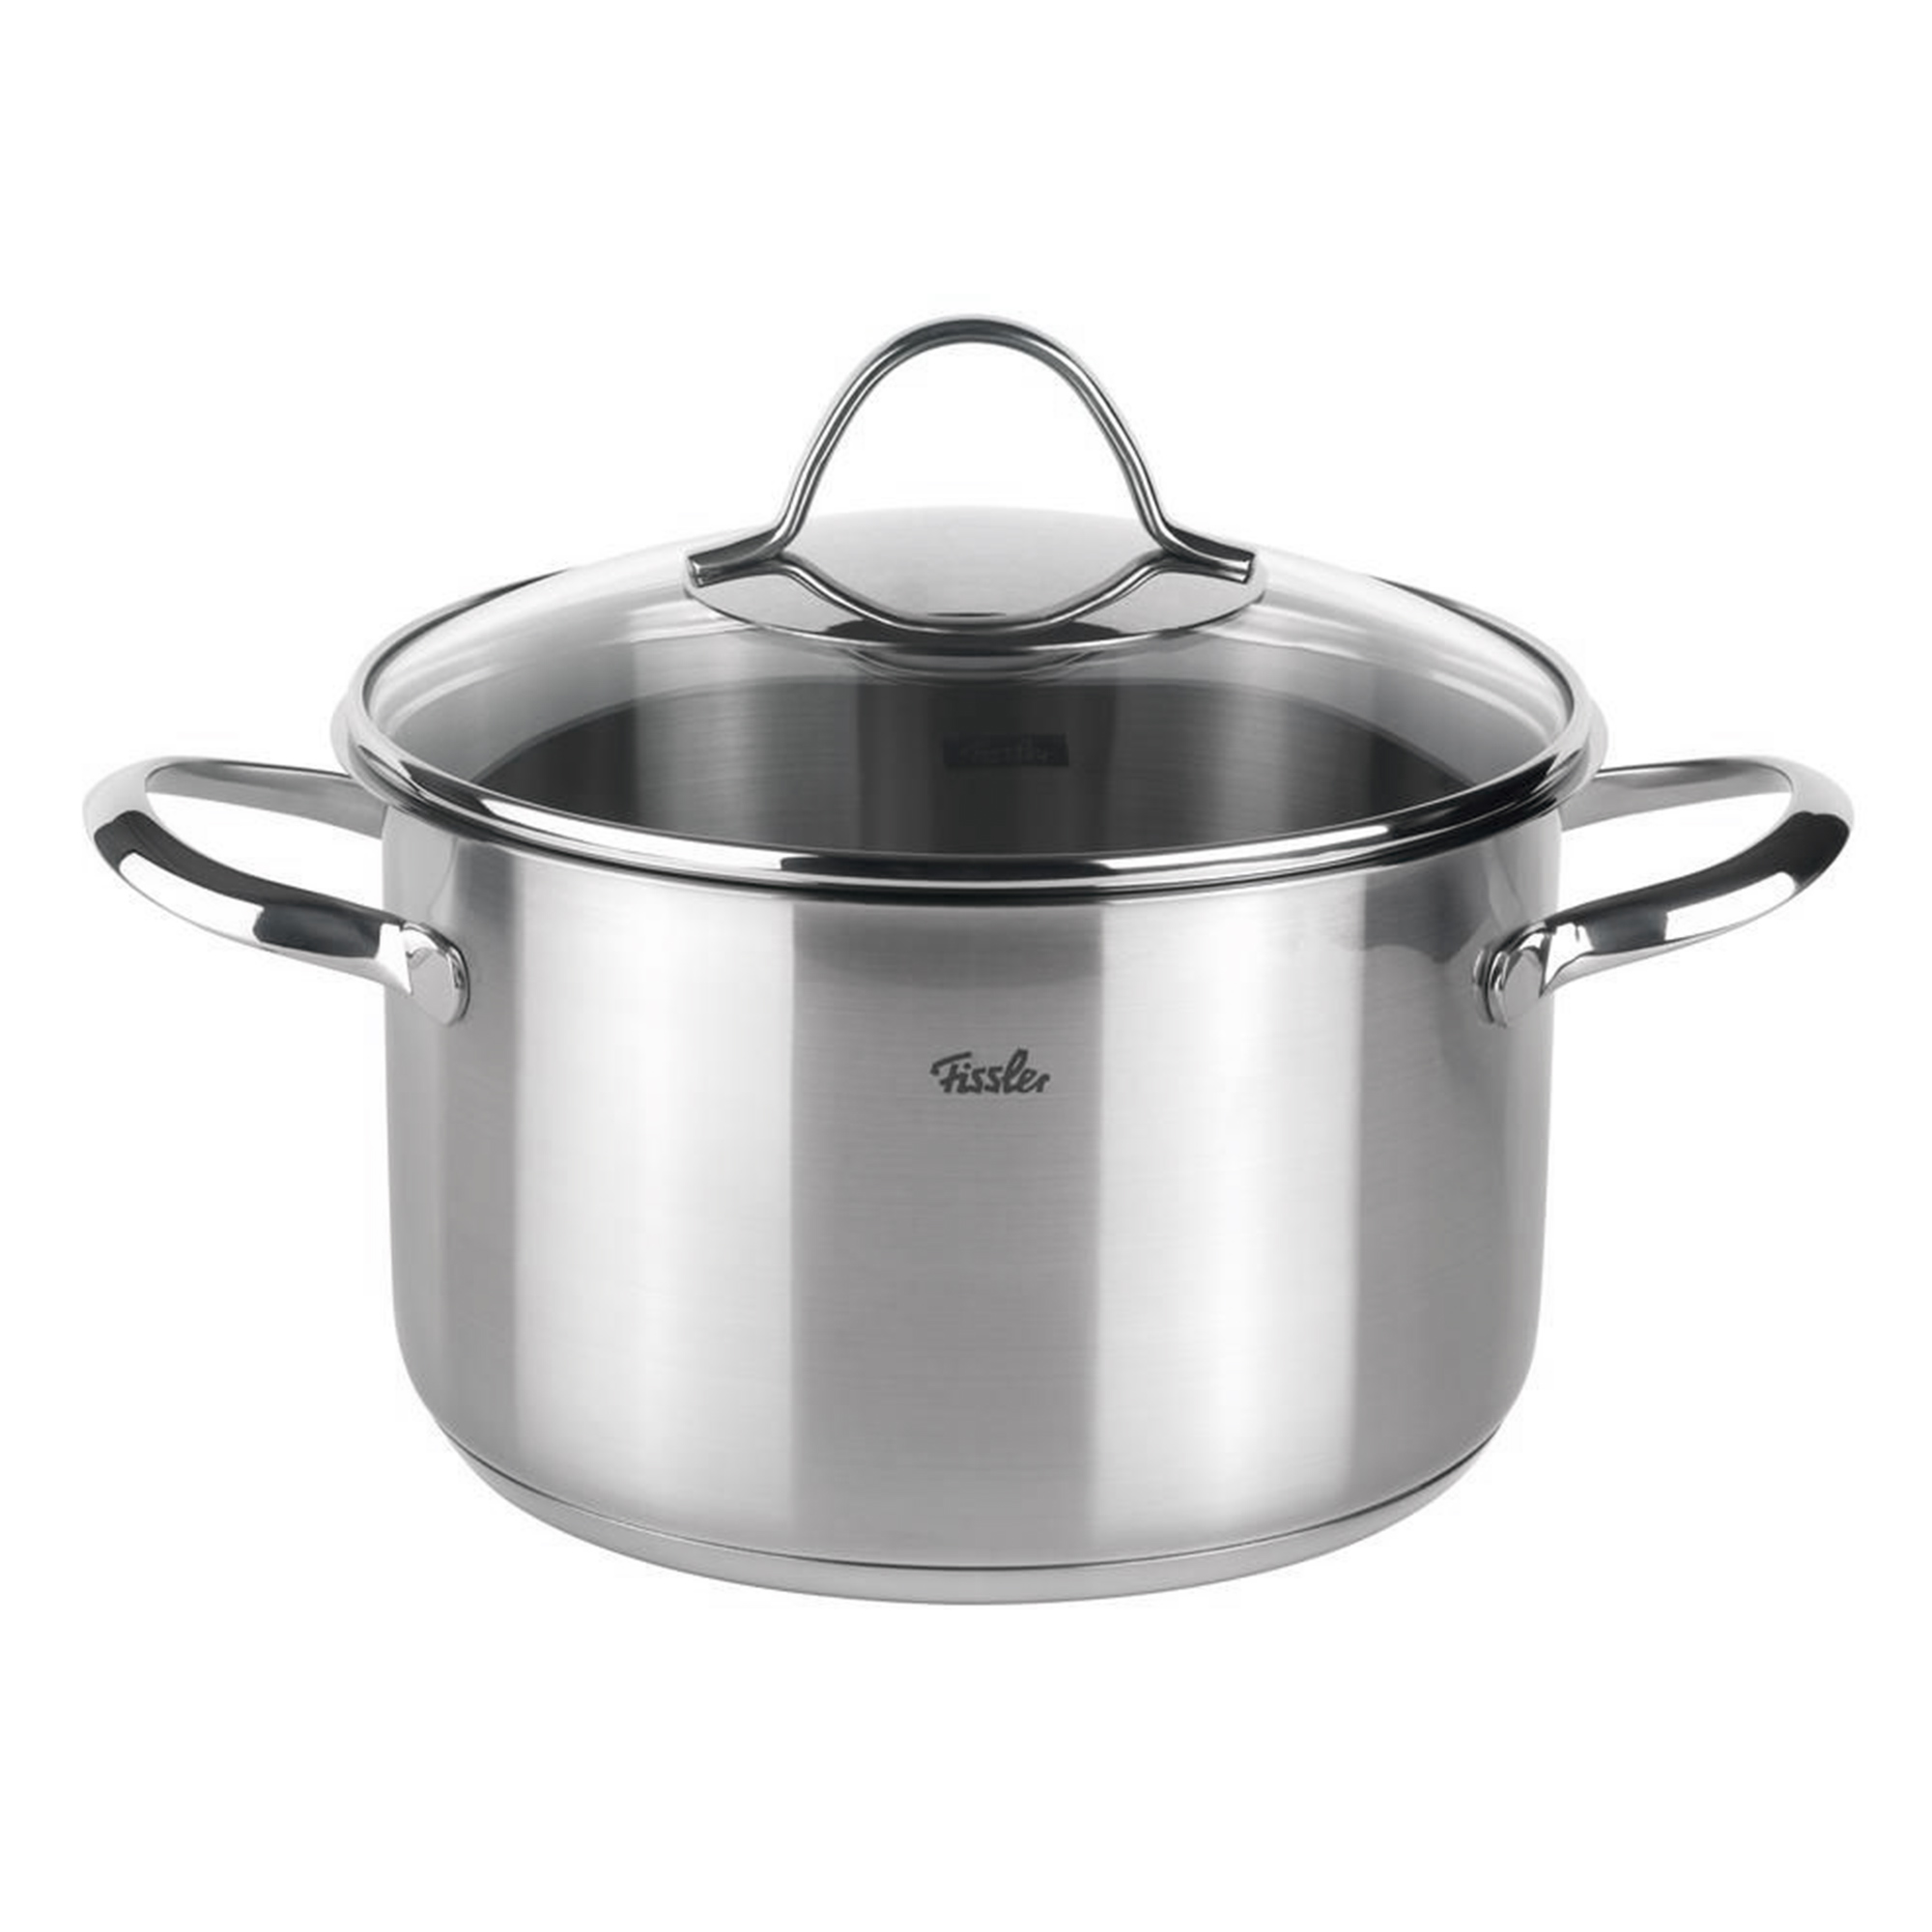 Купить Кастрюля Fissler Paris 20 см 3, 6 л, Серебристый